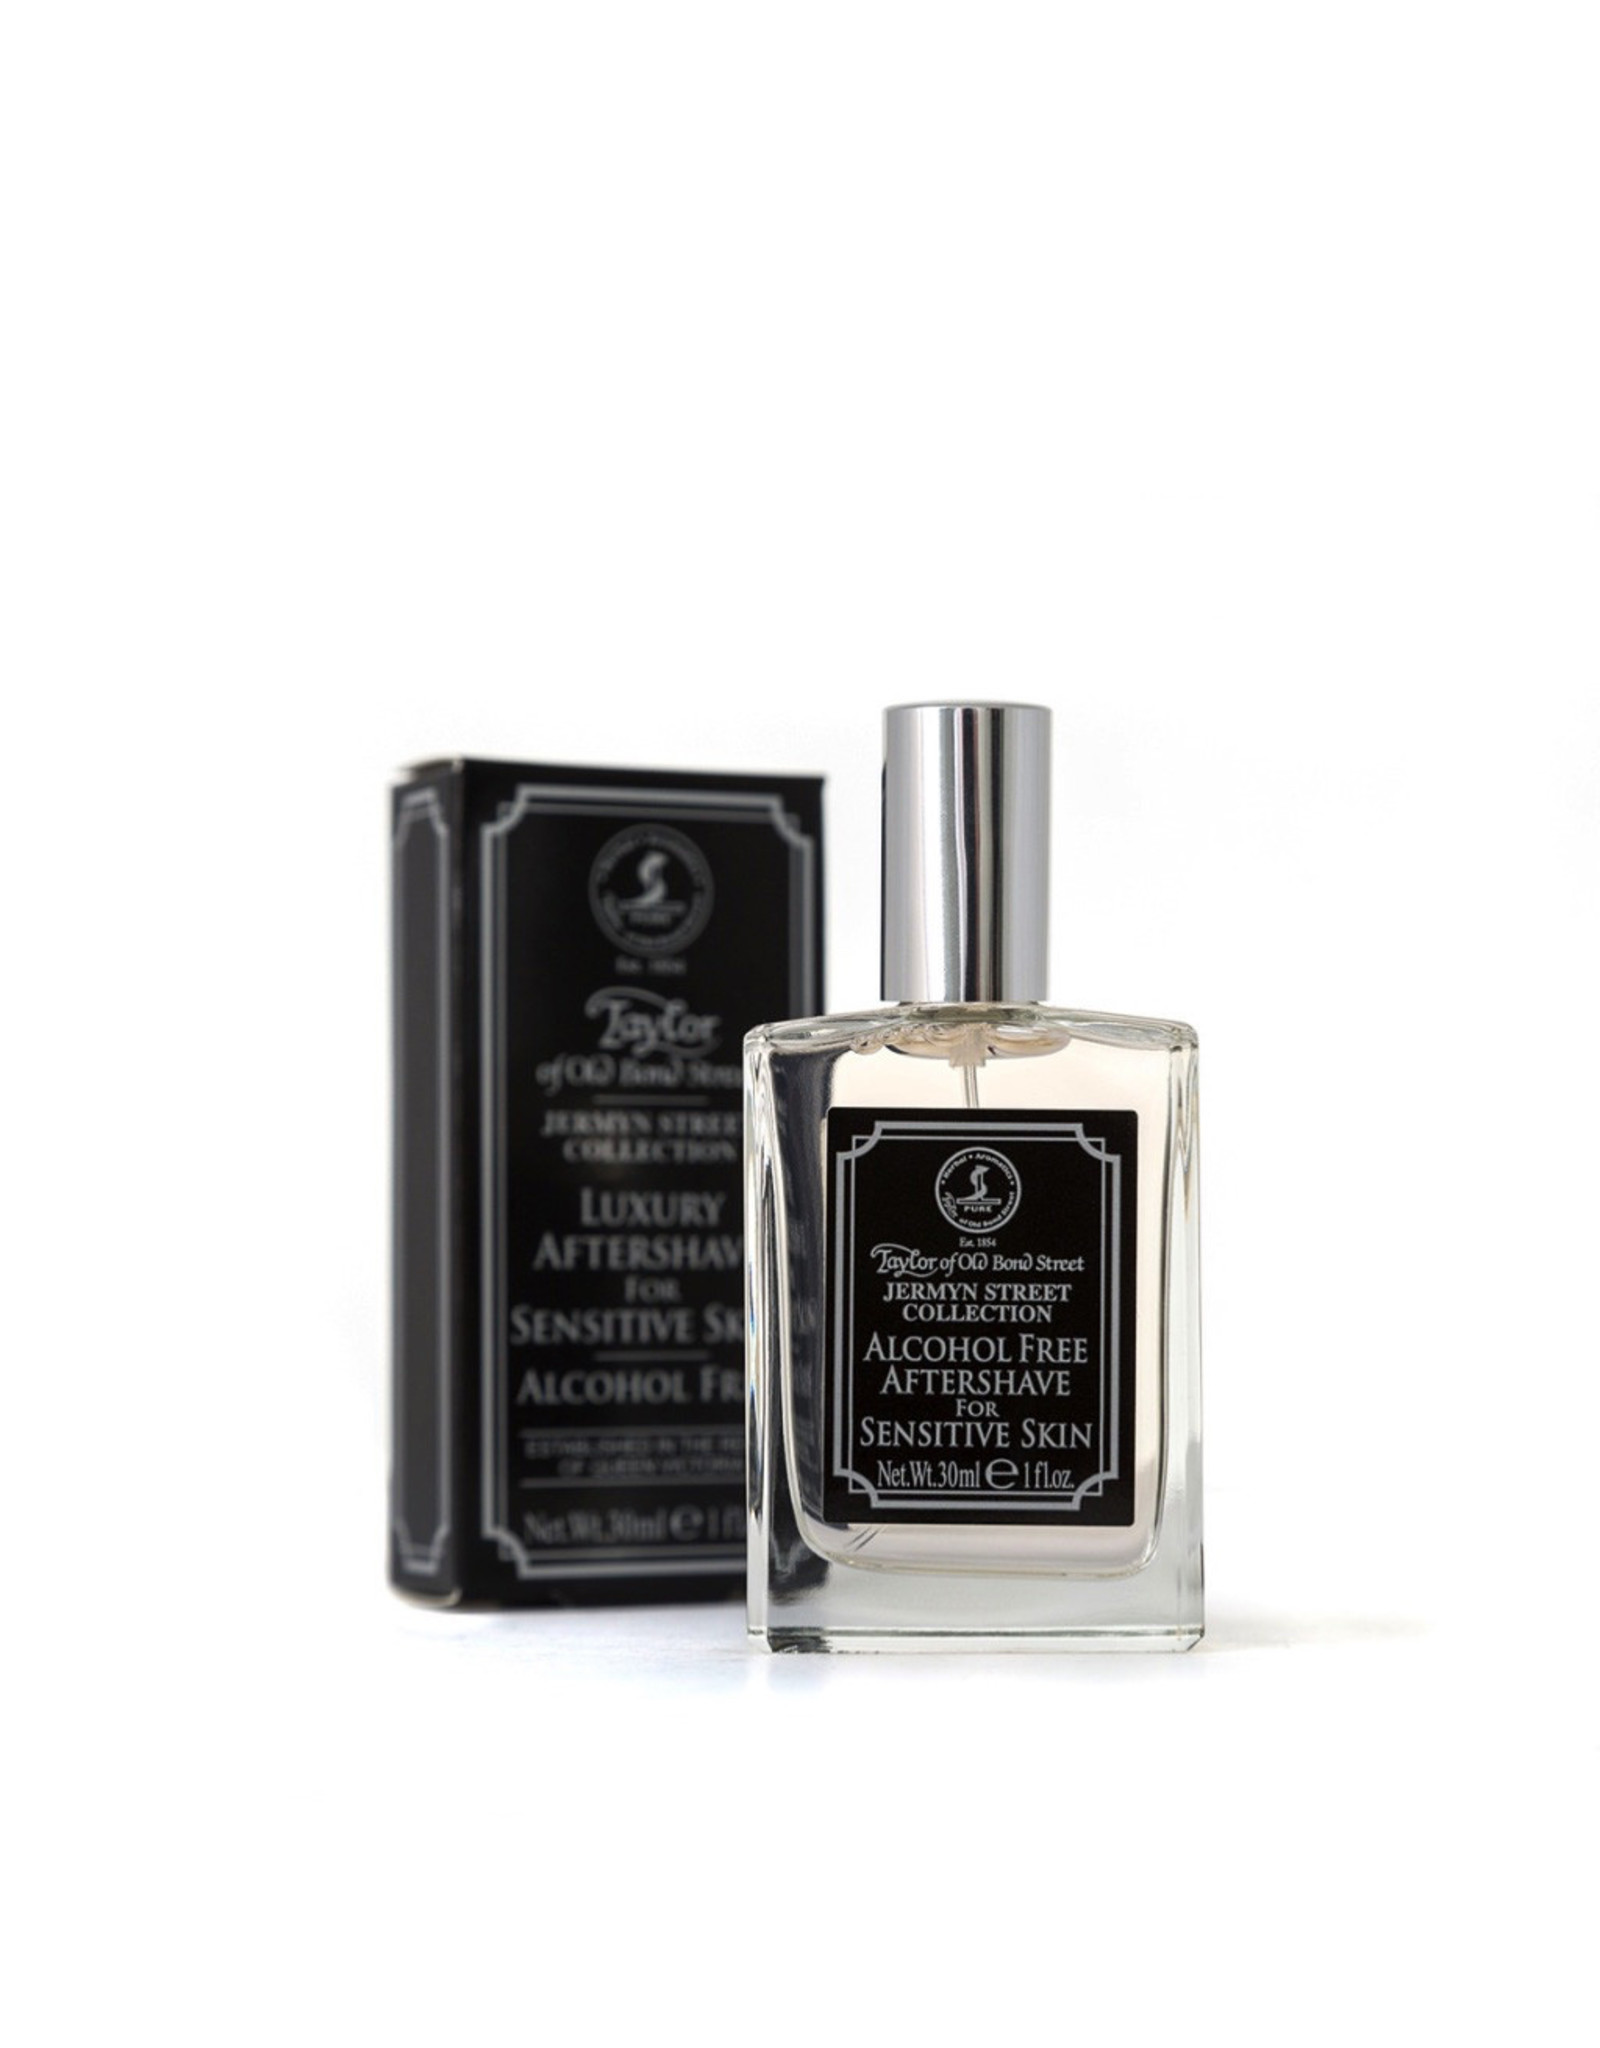 Taylor of Old Bond Street Aftershave Lotion 30ml Jermyn Street